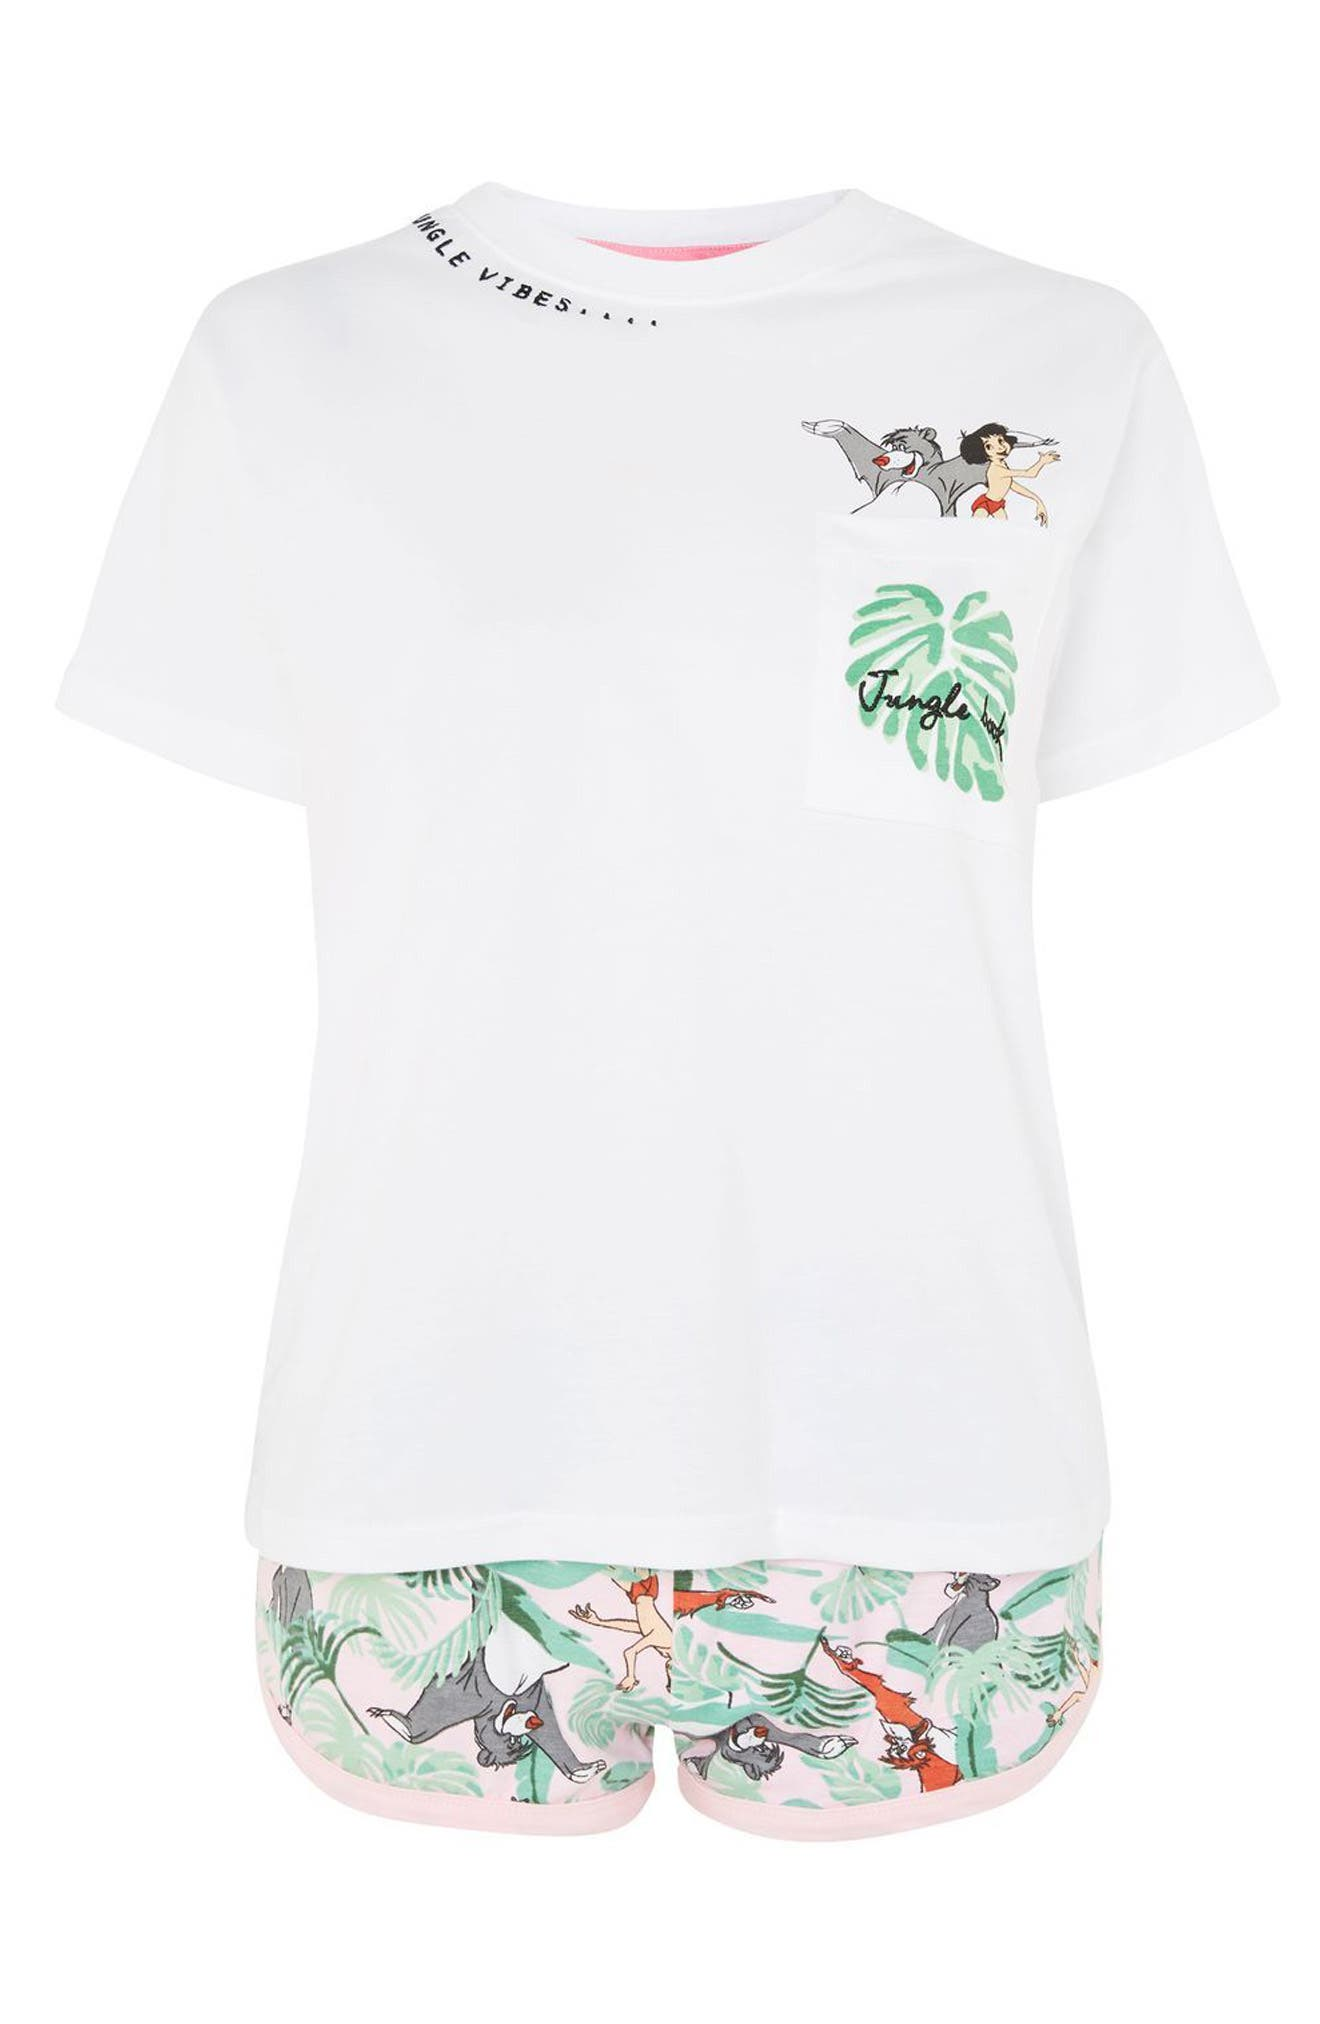 Disney<sup>®</sup> Jungle Book Short Pajamas,                             Alternate thumbnail 3, color,                             White Multi